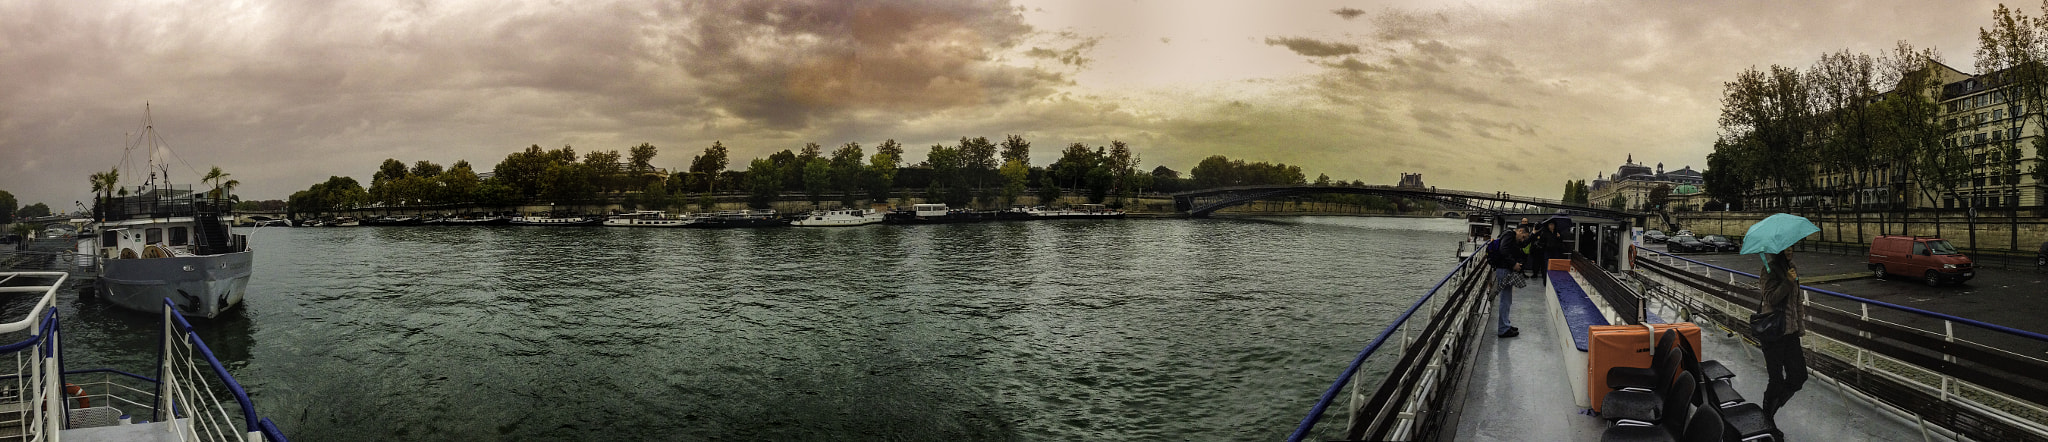 Photograph The Seine - Panorama by Abba Shapiro on 500px